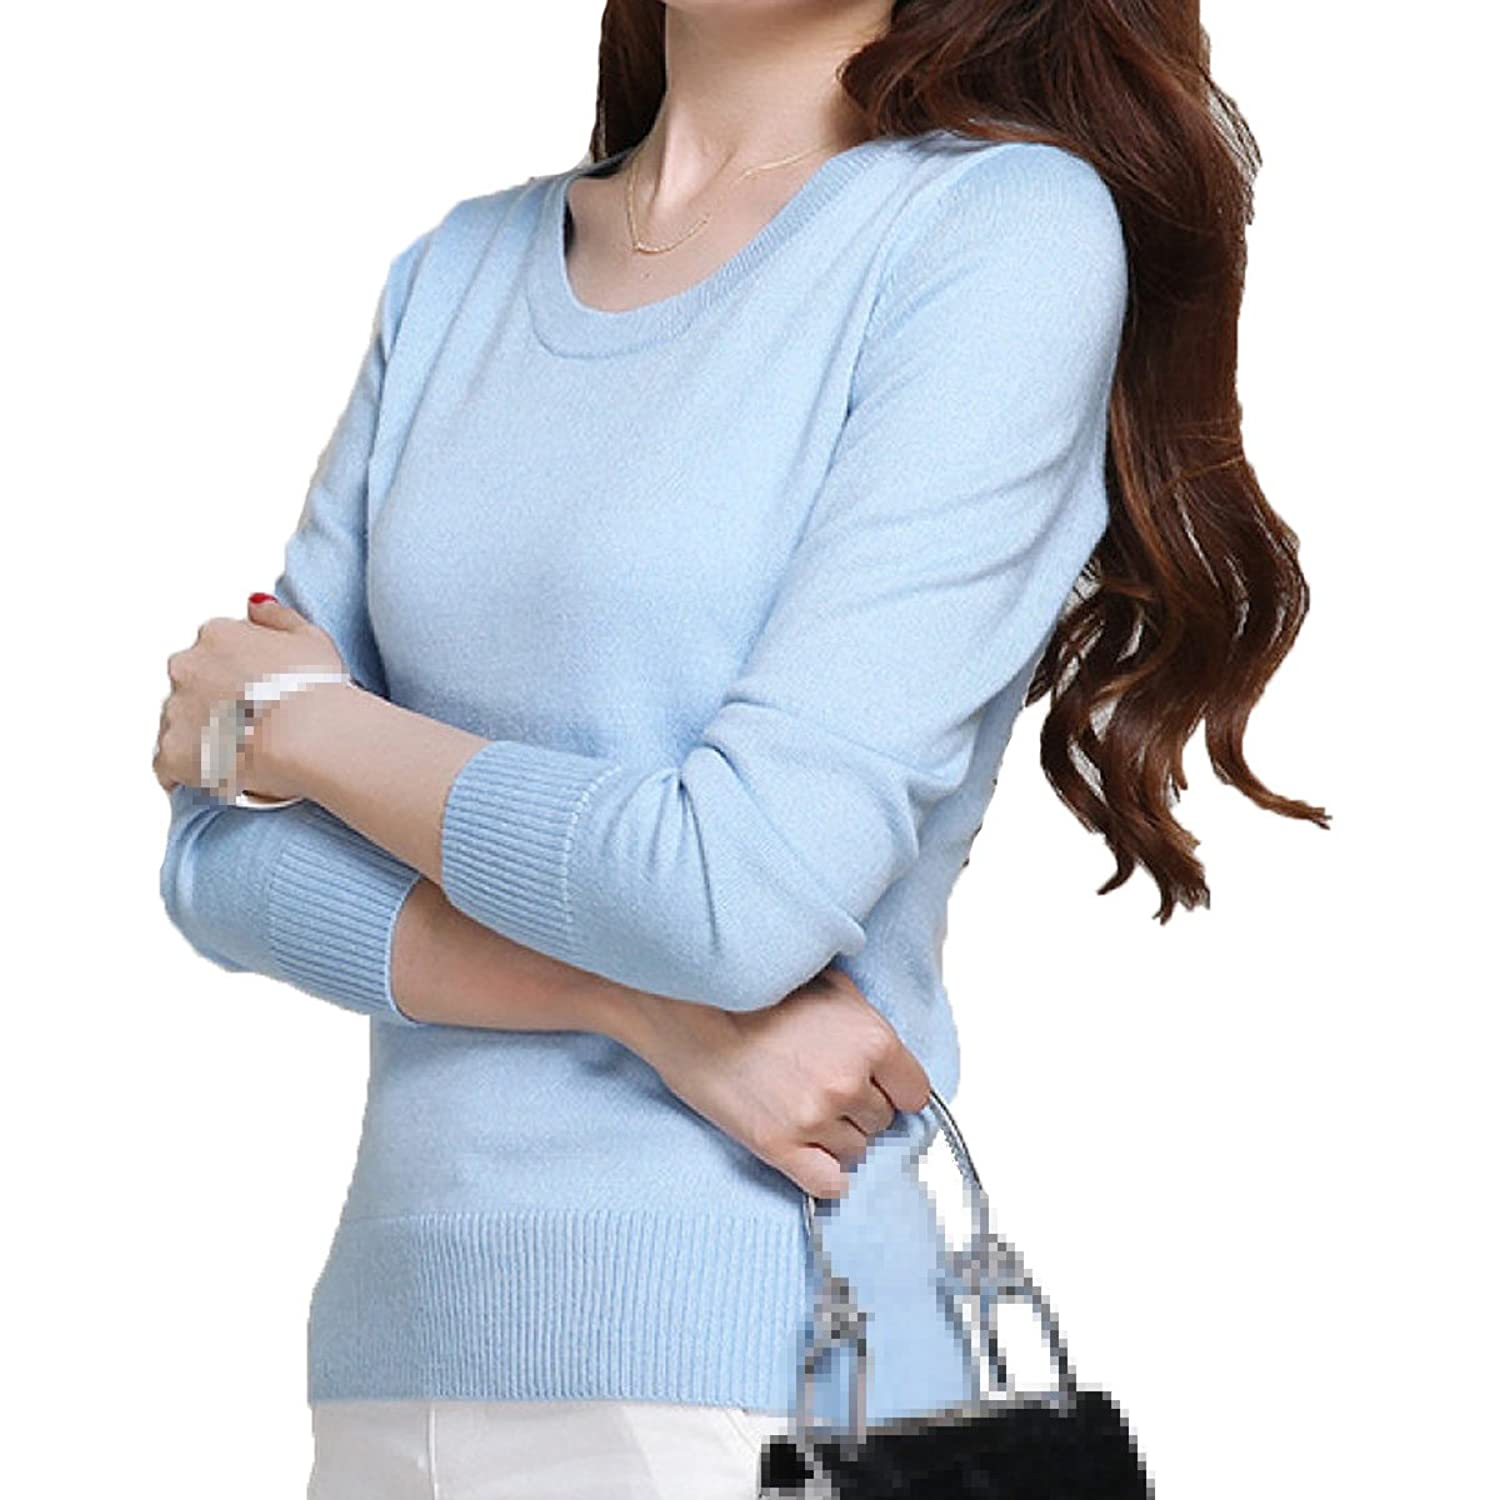 XGMSD Female Long Sleeves Sweaters Autumn Winter Bottoming Sweaters Wool,Sky-blue-XXXL